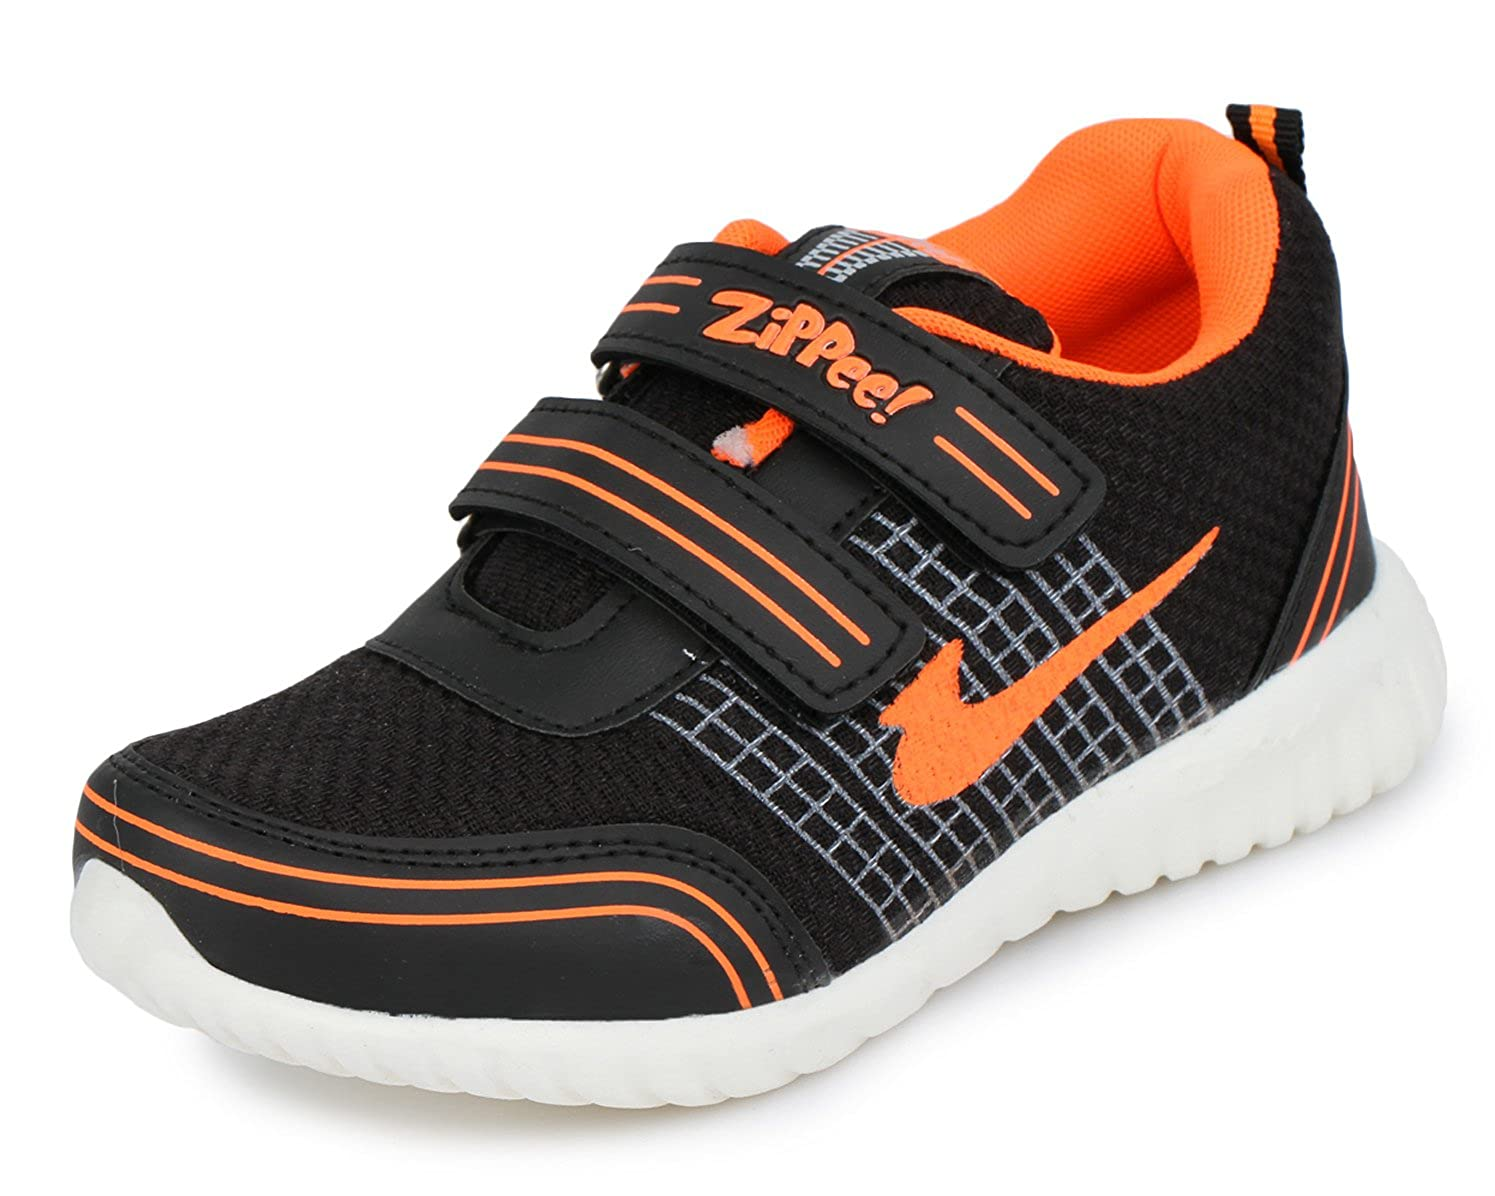 e79dc3abf TRASE Zippee-HY Sports Shoes for Boys-Girls (for Age  2-12 Years)  Buy  Online at Low Prices in India - Amazon.in